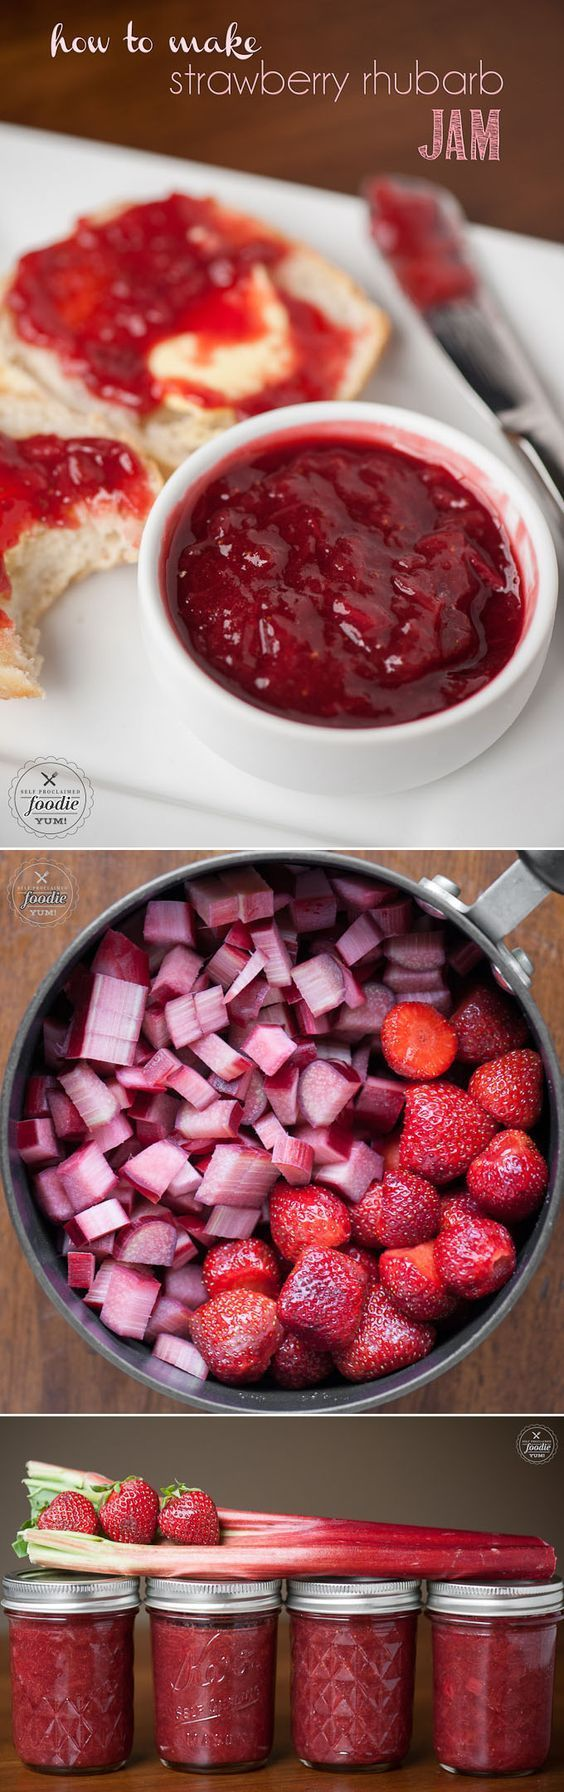 Canning in jars is easy when you know How to Make Strawberry Rhubarb Jam from fresh rhubarb, strawberries, sugar and lemon without pectin.